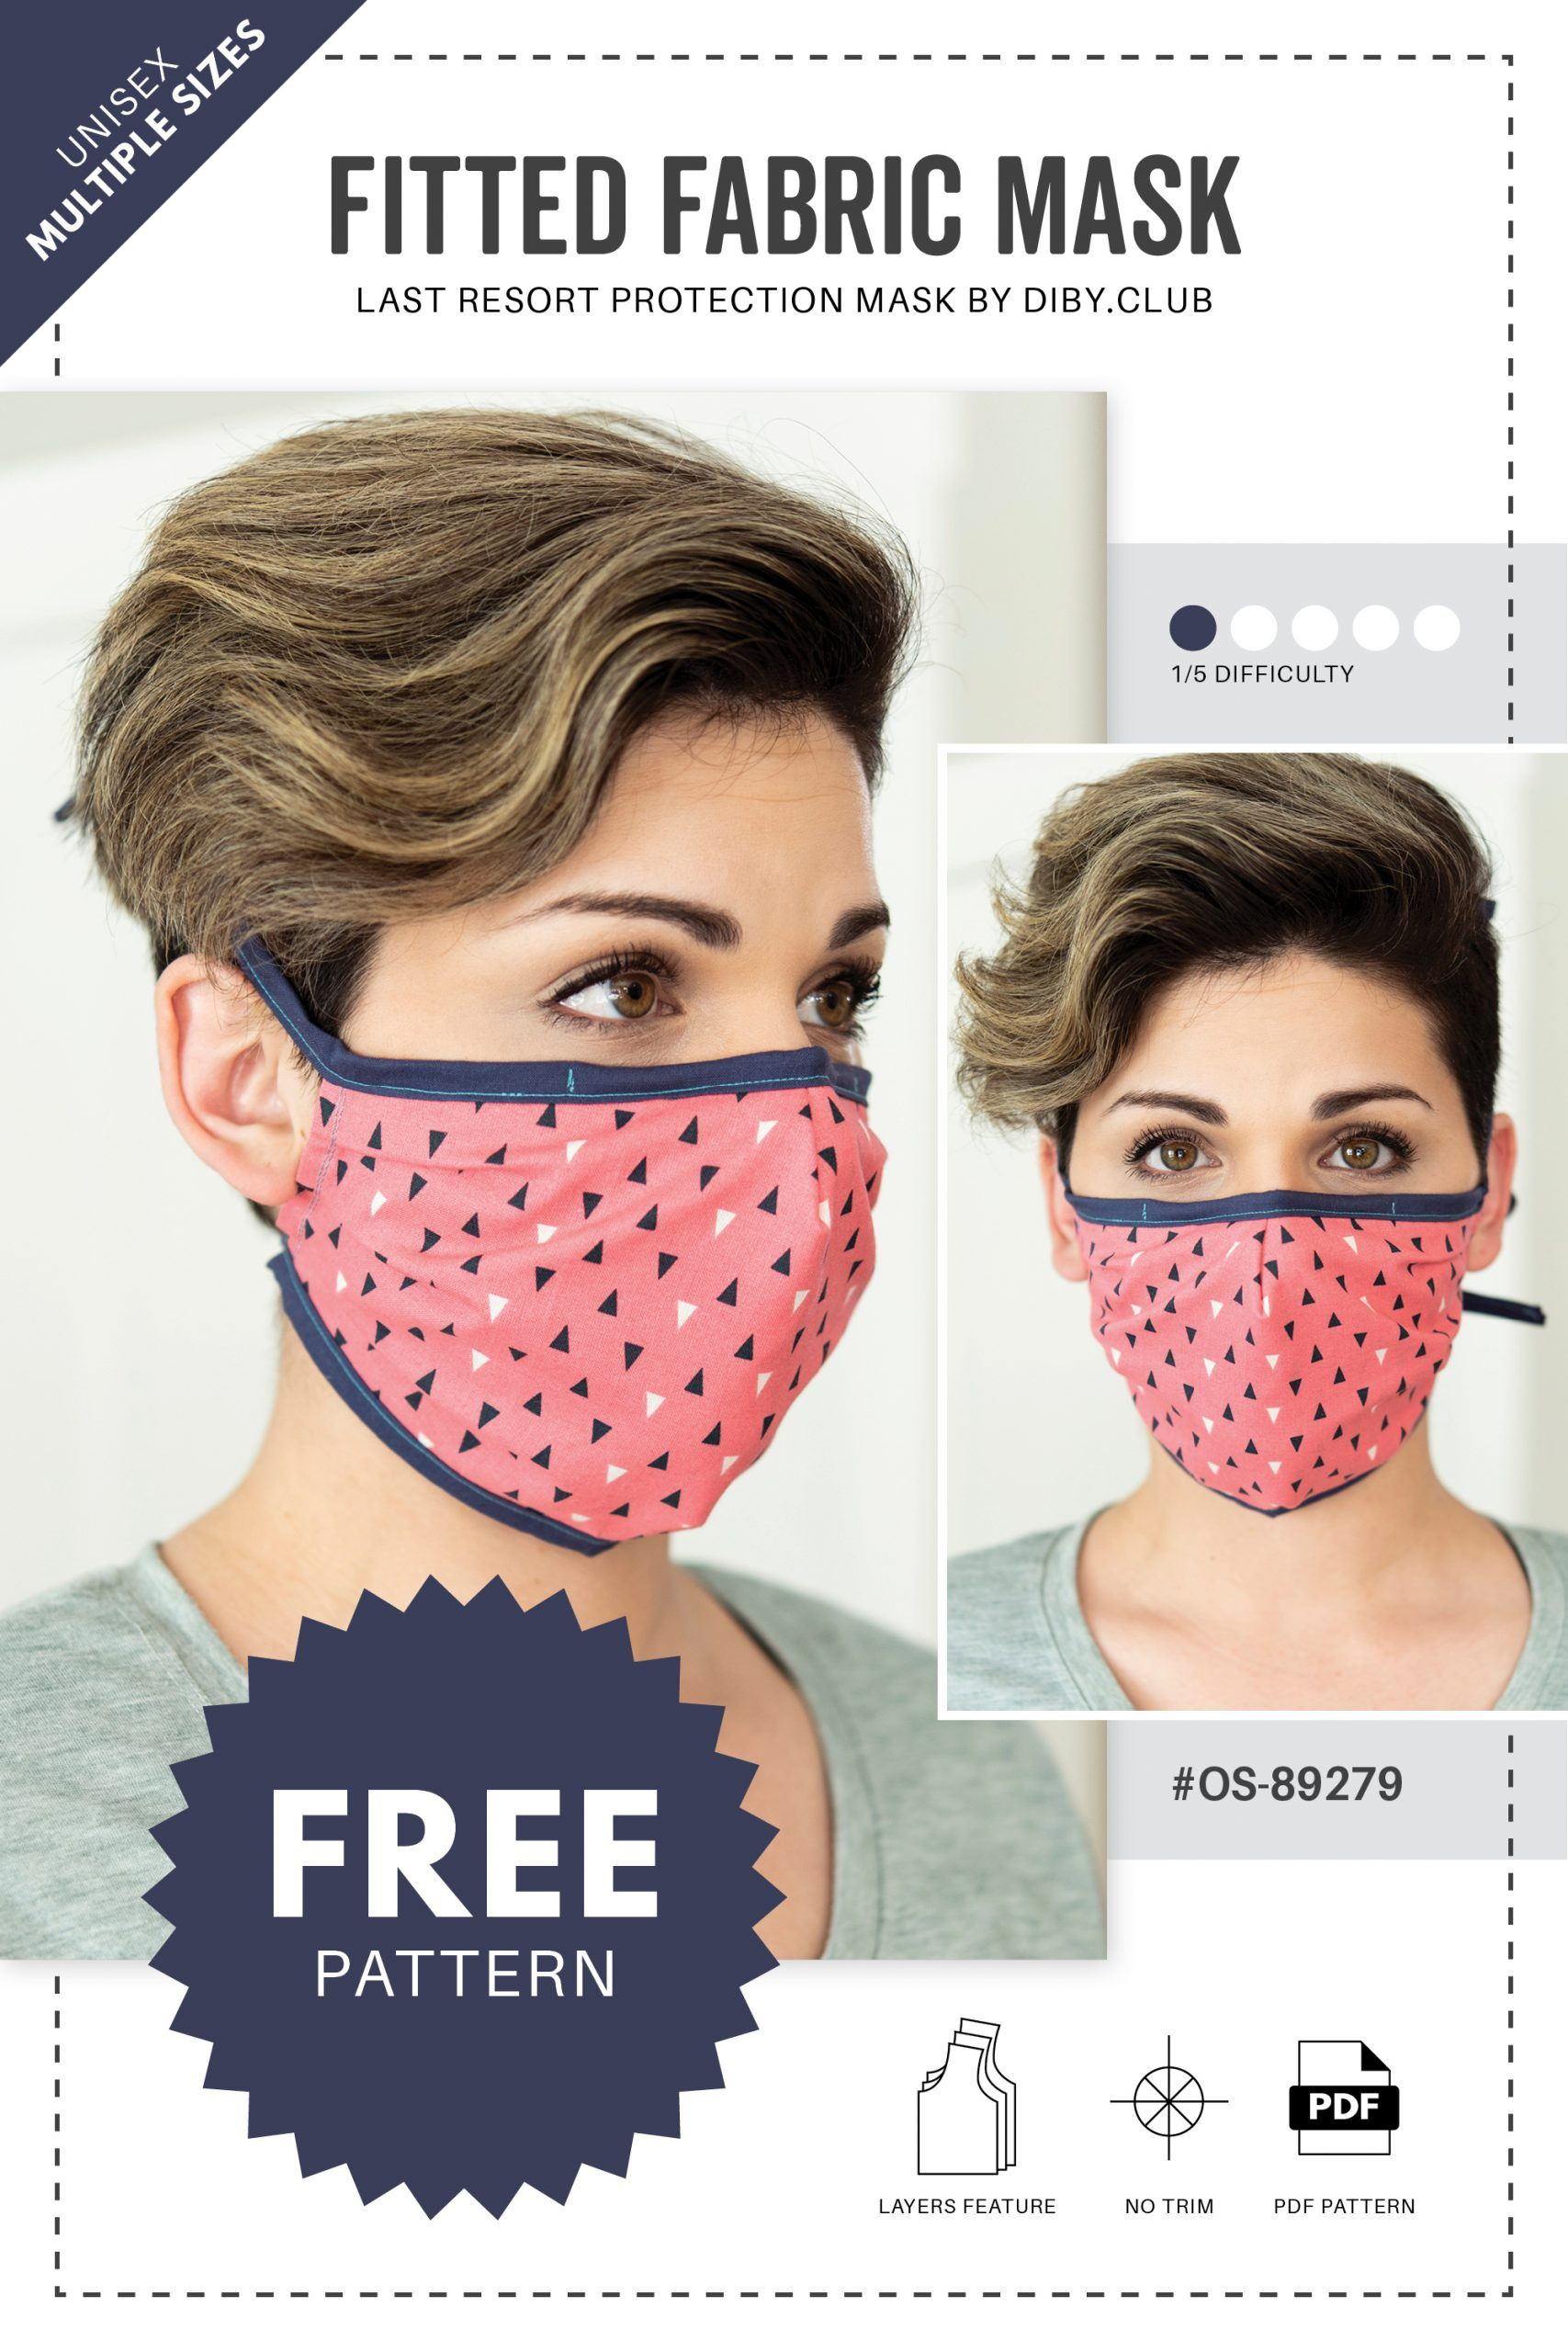 Fitted Face Mask FREE PDF Sewing Pattern DIBY Club in